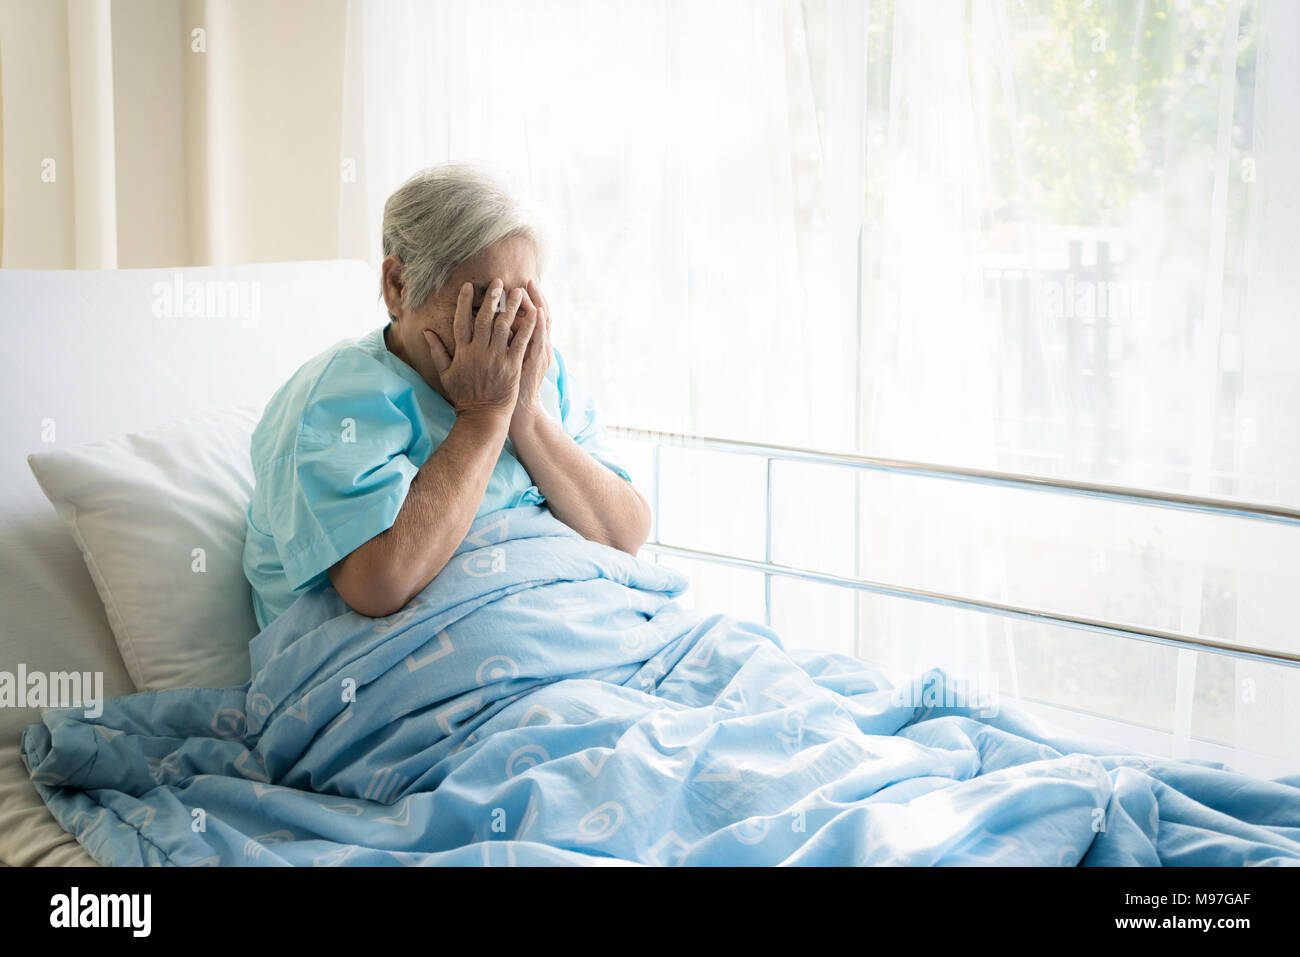 Asian depressed elderly woman patients lying on bed looking out the window in hospital. Elderly woman patients is glad recovered from the illness. - Stock Image